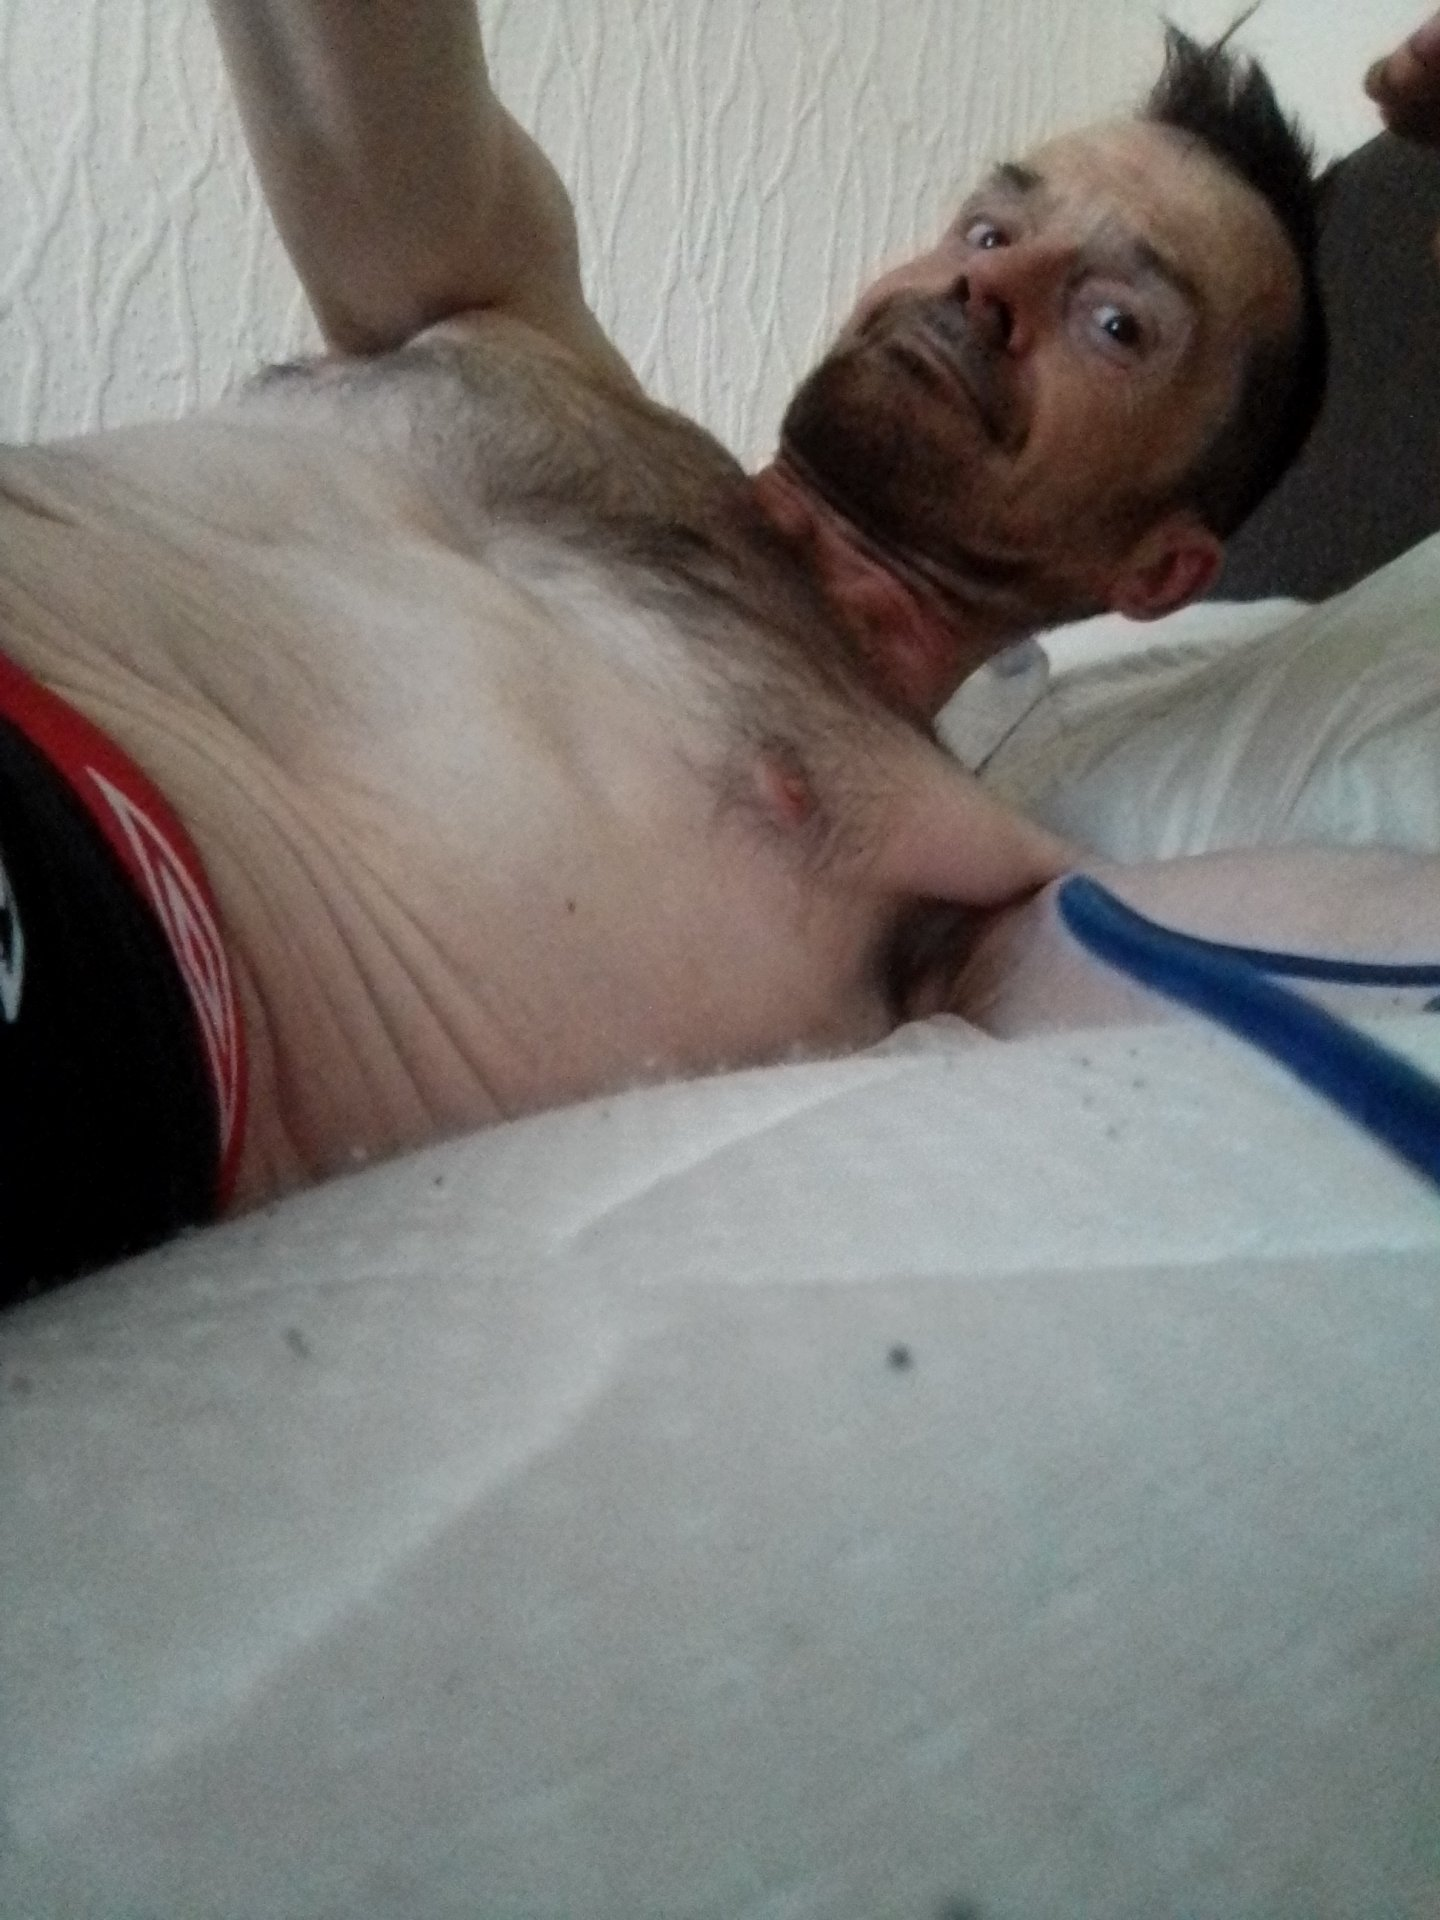 Philbreeze82 from City of Stoke-on-Trent,United Kingdom